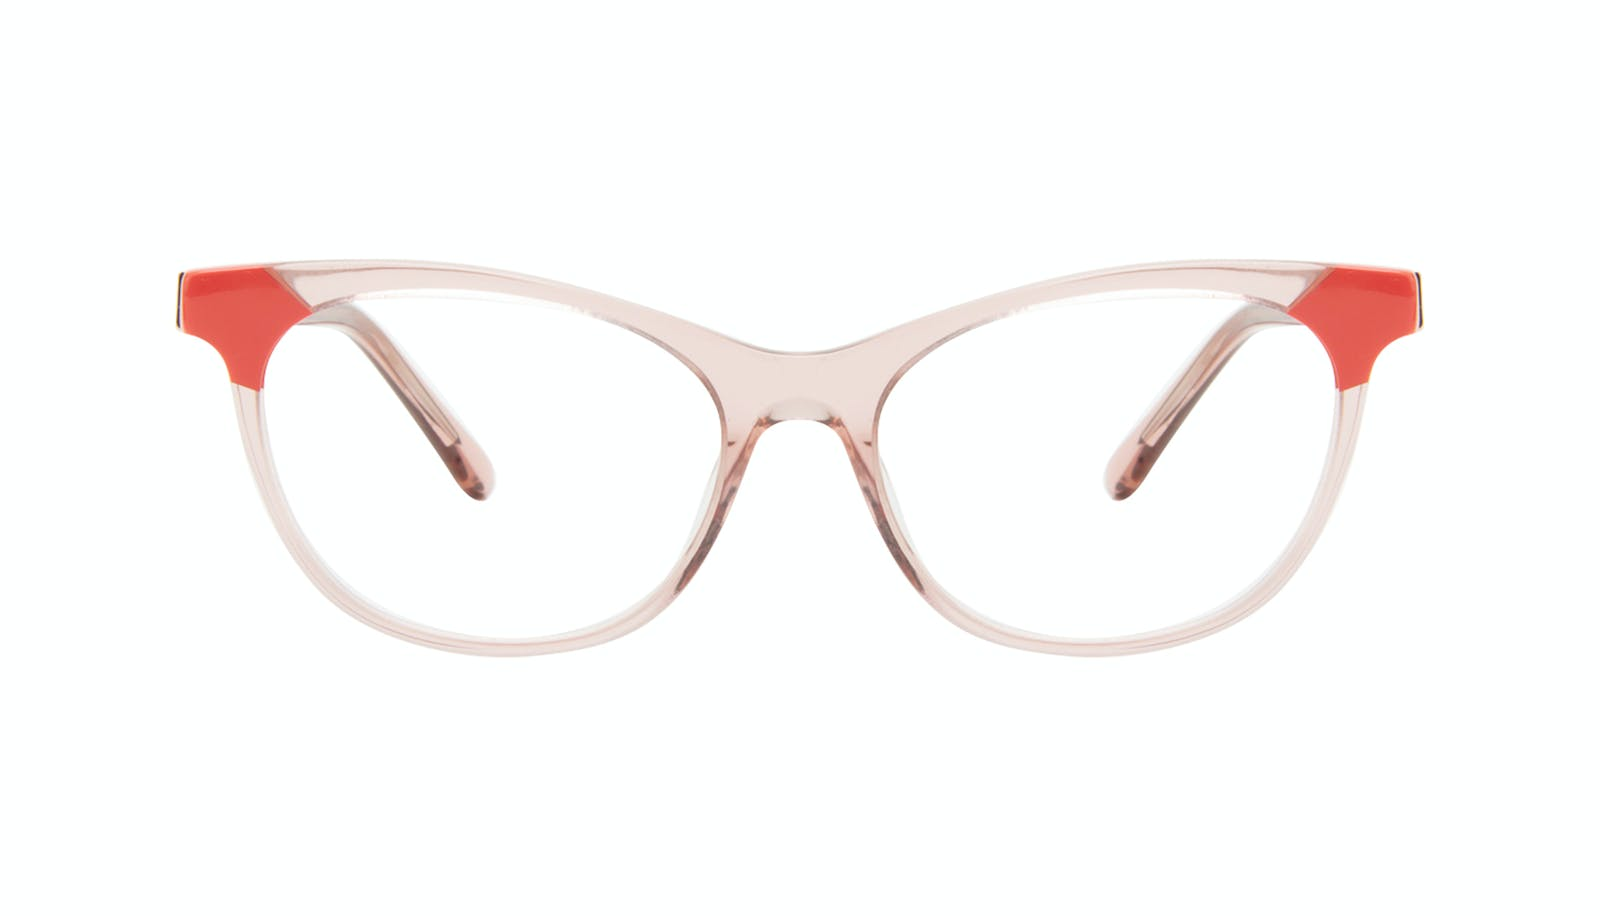 8c733e4dc7 Affordable Fashion Glasses Cat Eye Eyeglasses Women Witty Pink Coral